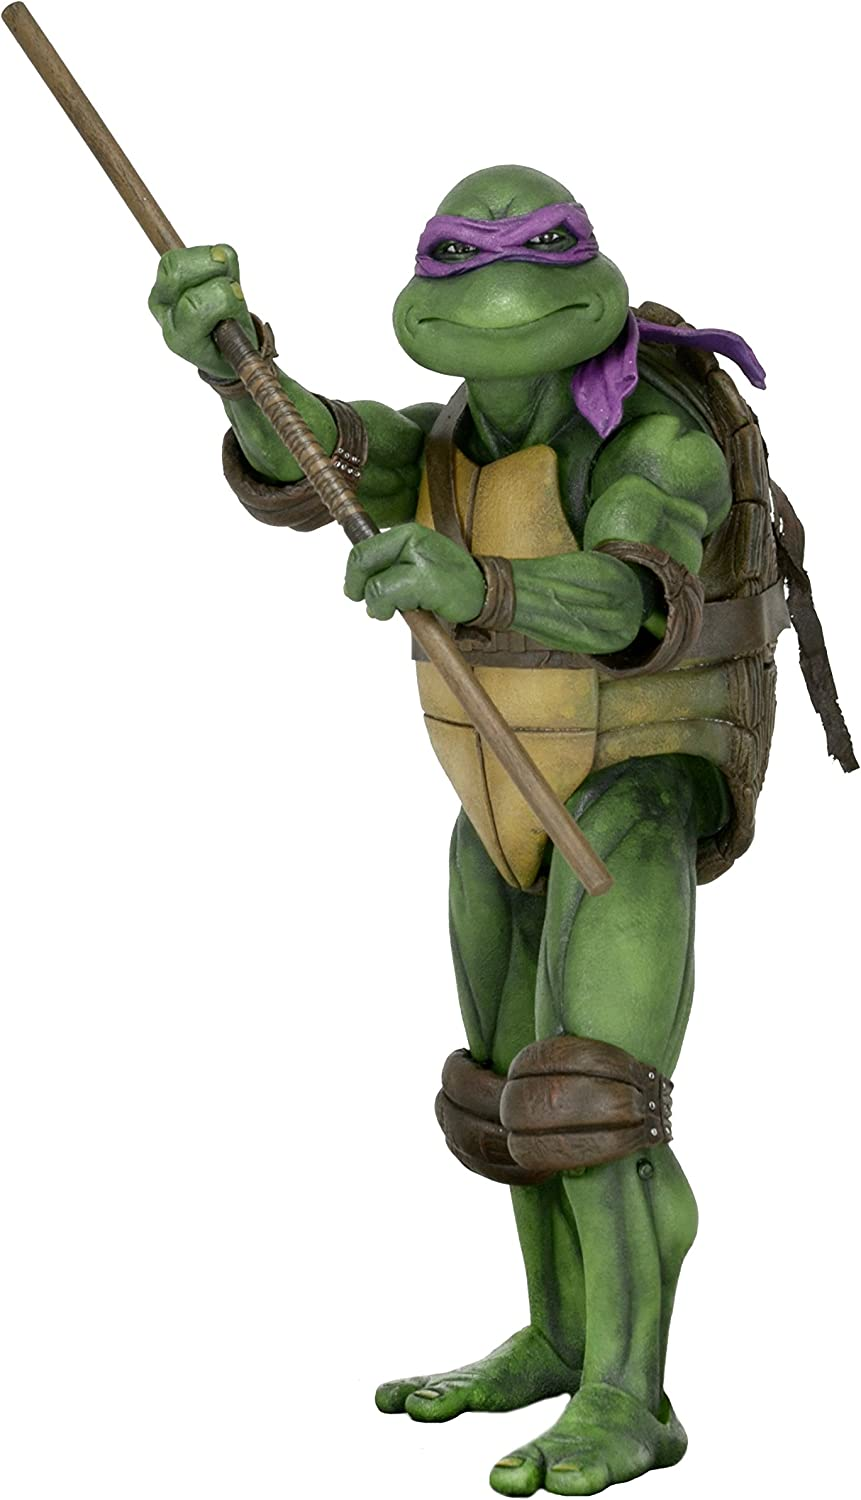 Amazon.com: NECA TMNT Movie: Donatello 1/4 escala Figura de ...